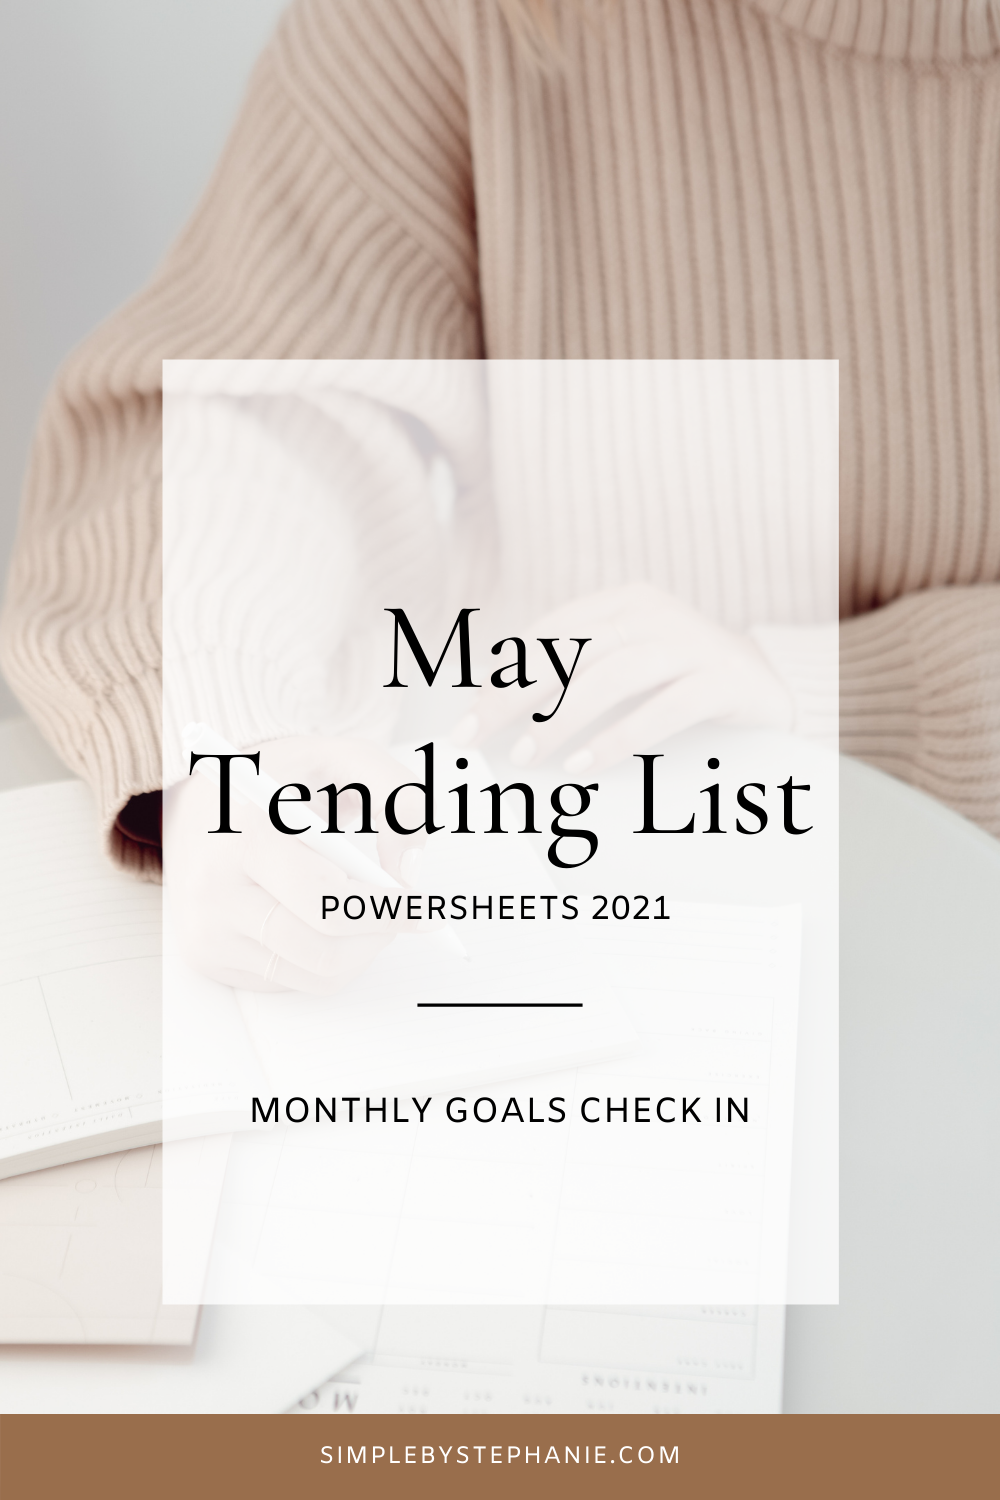 may_powersheets